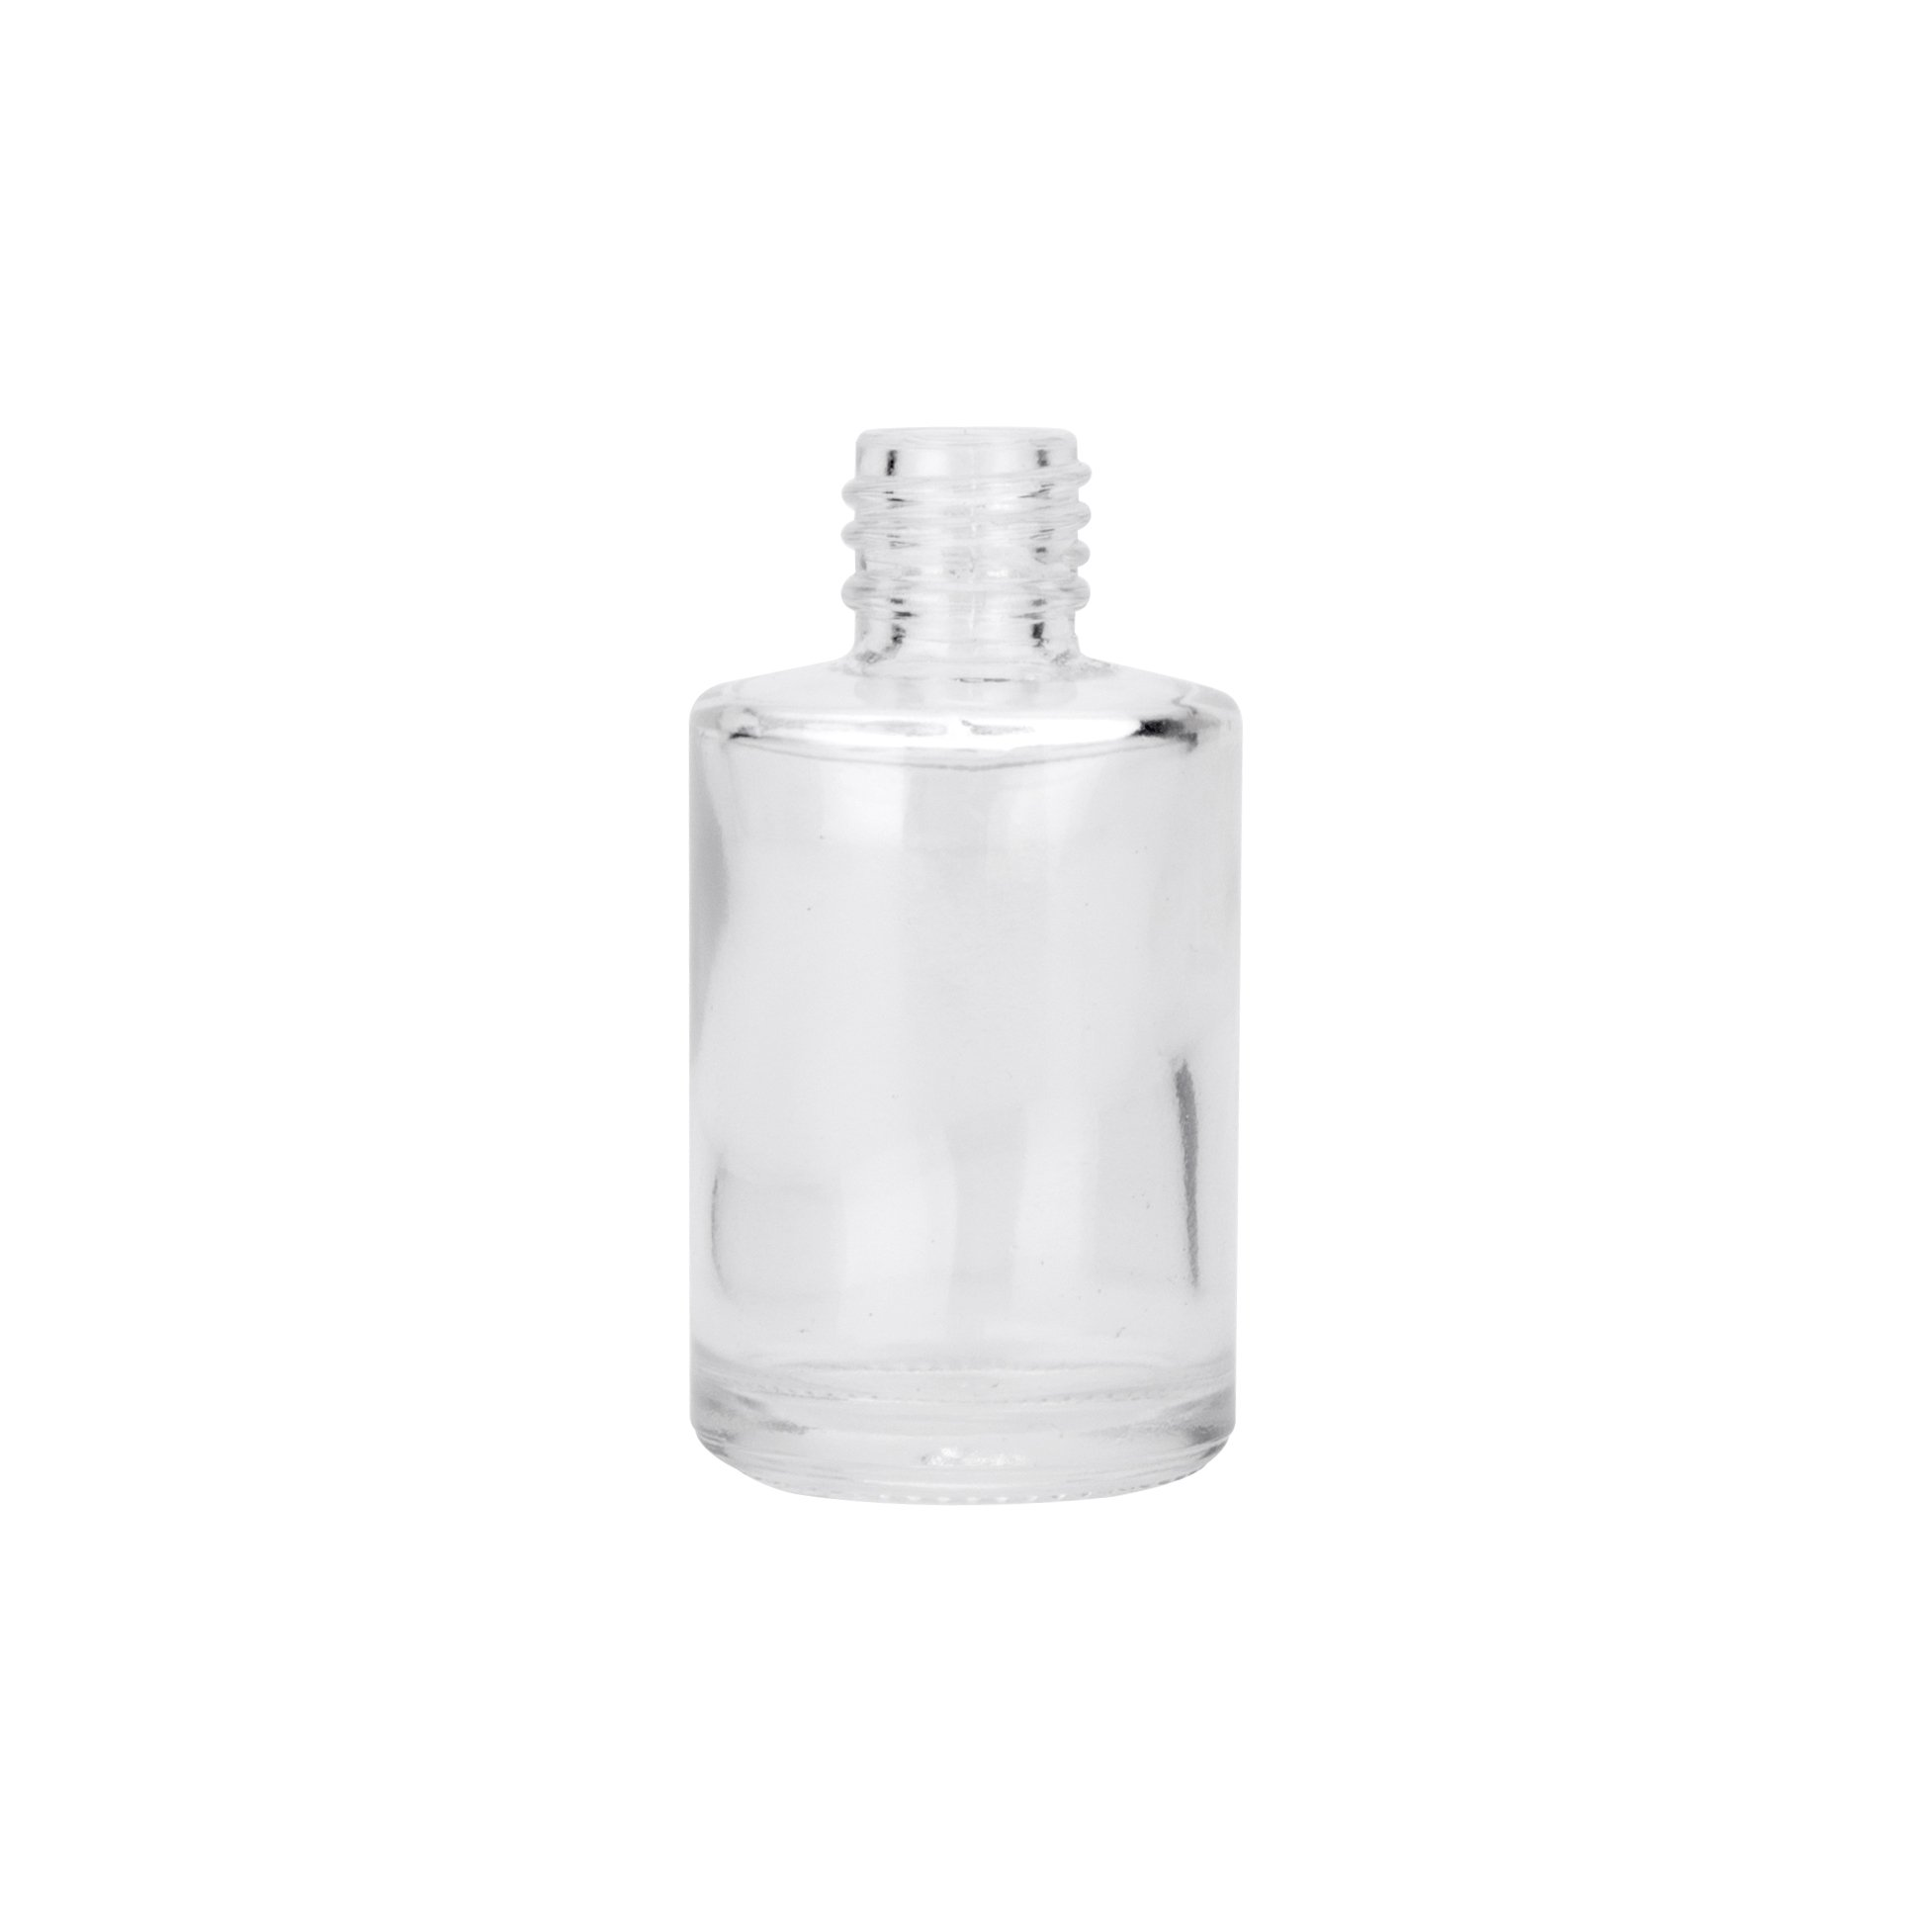 15ml Empty Glass Gel Nail Polish Bottle